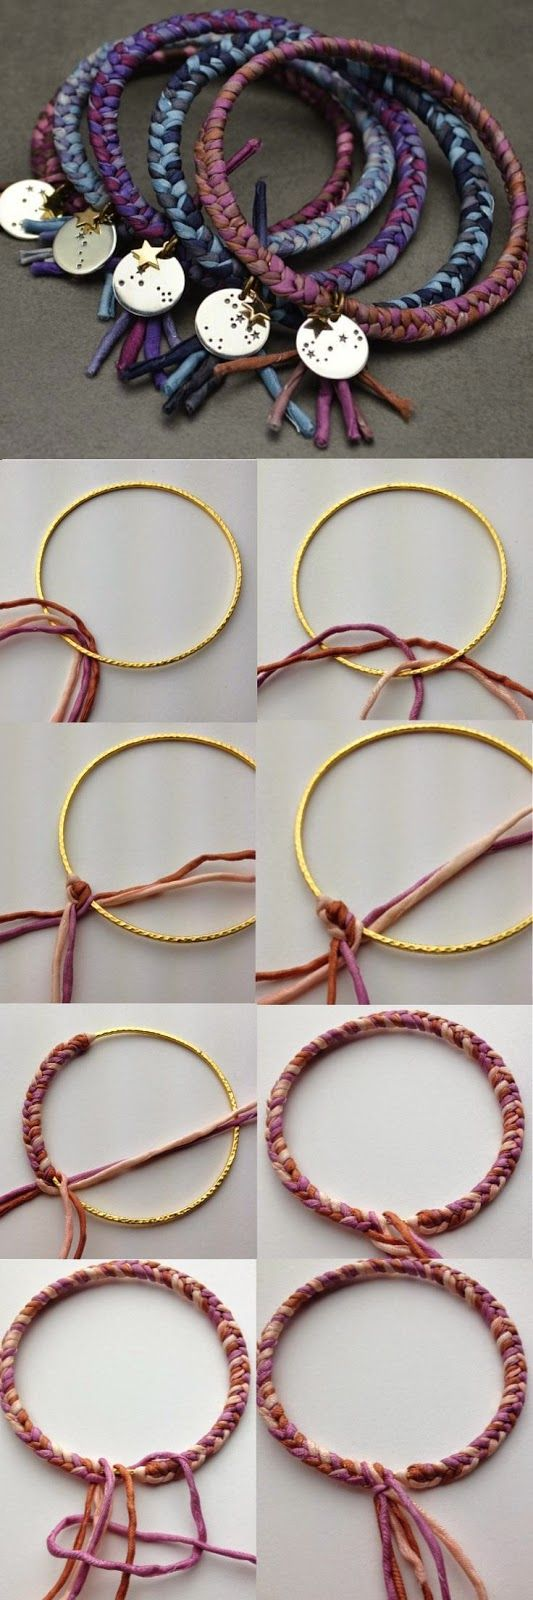 Boho bracelets tutorial | Fashion And Style: